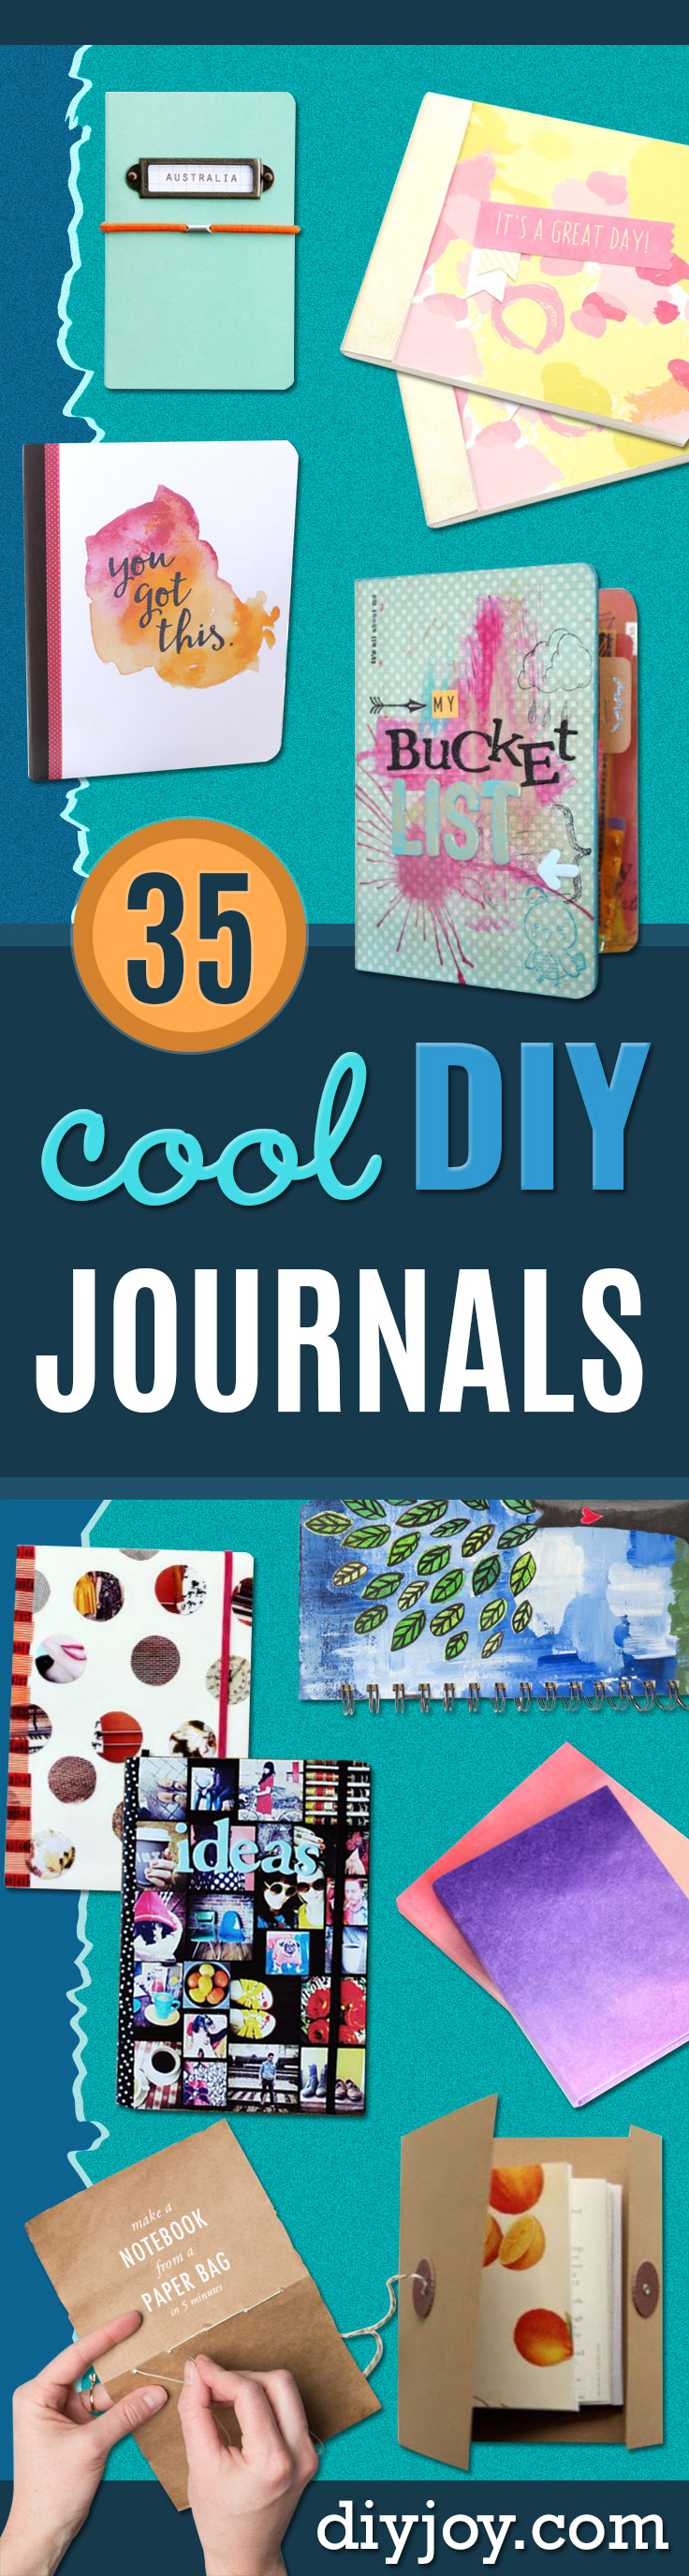 35 diy journals for your beautiful life diy journals ideas for making a handmade journal cover art tutorial binding tips solutioingenieria Choice Image